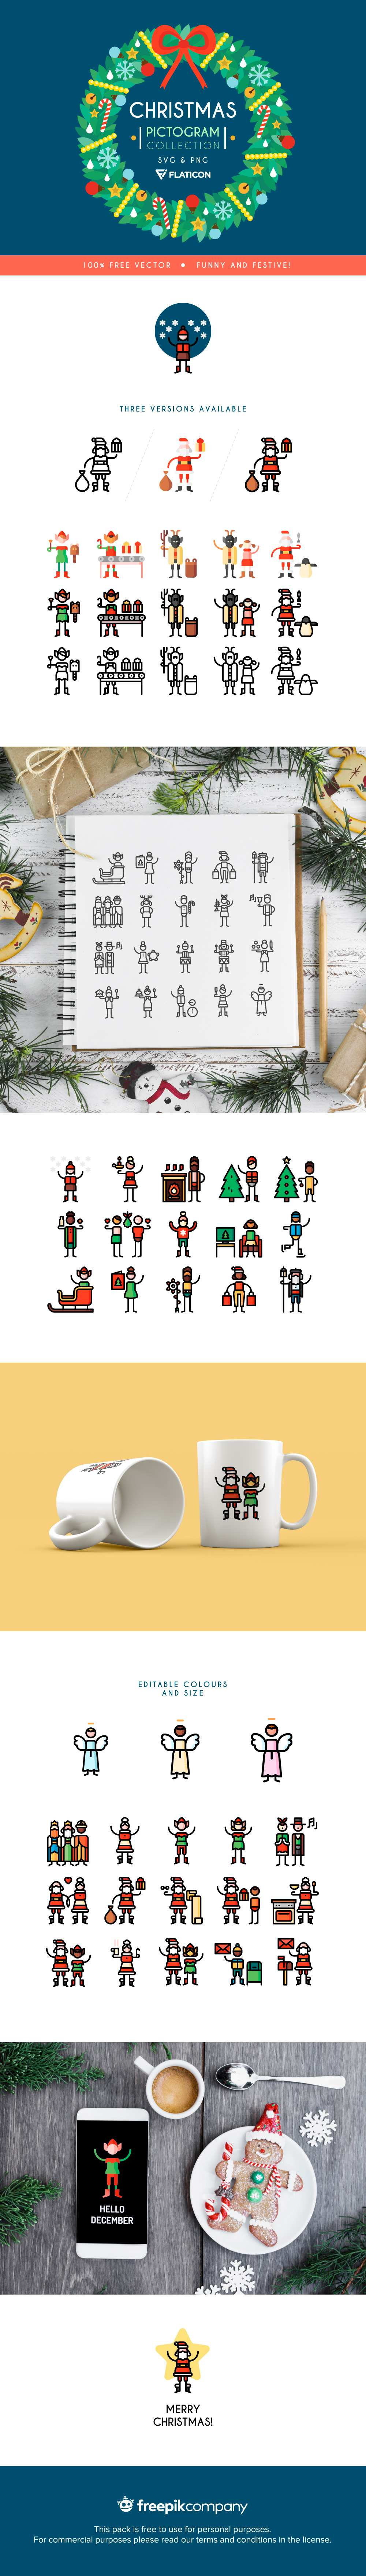 The Christmas Pictogram Collection AI free icon set festive winter celebrate svg illustrator adobe